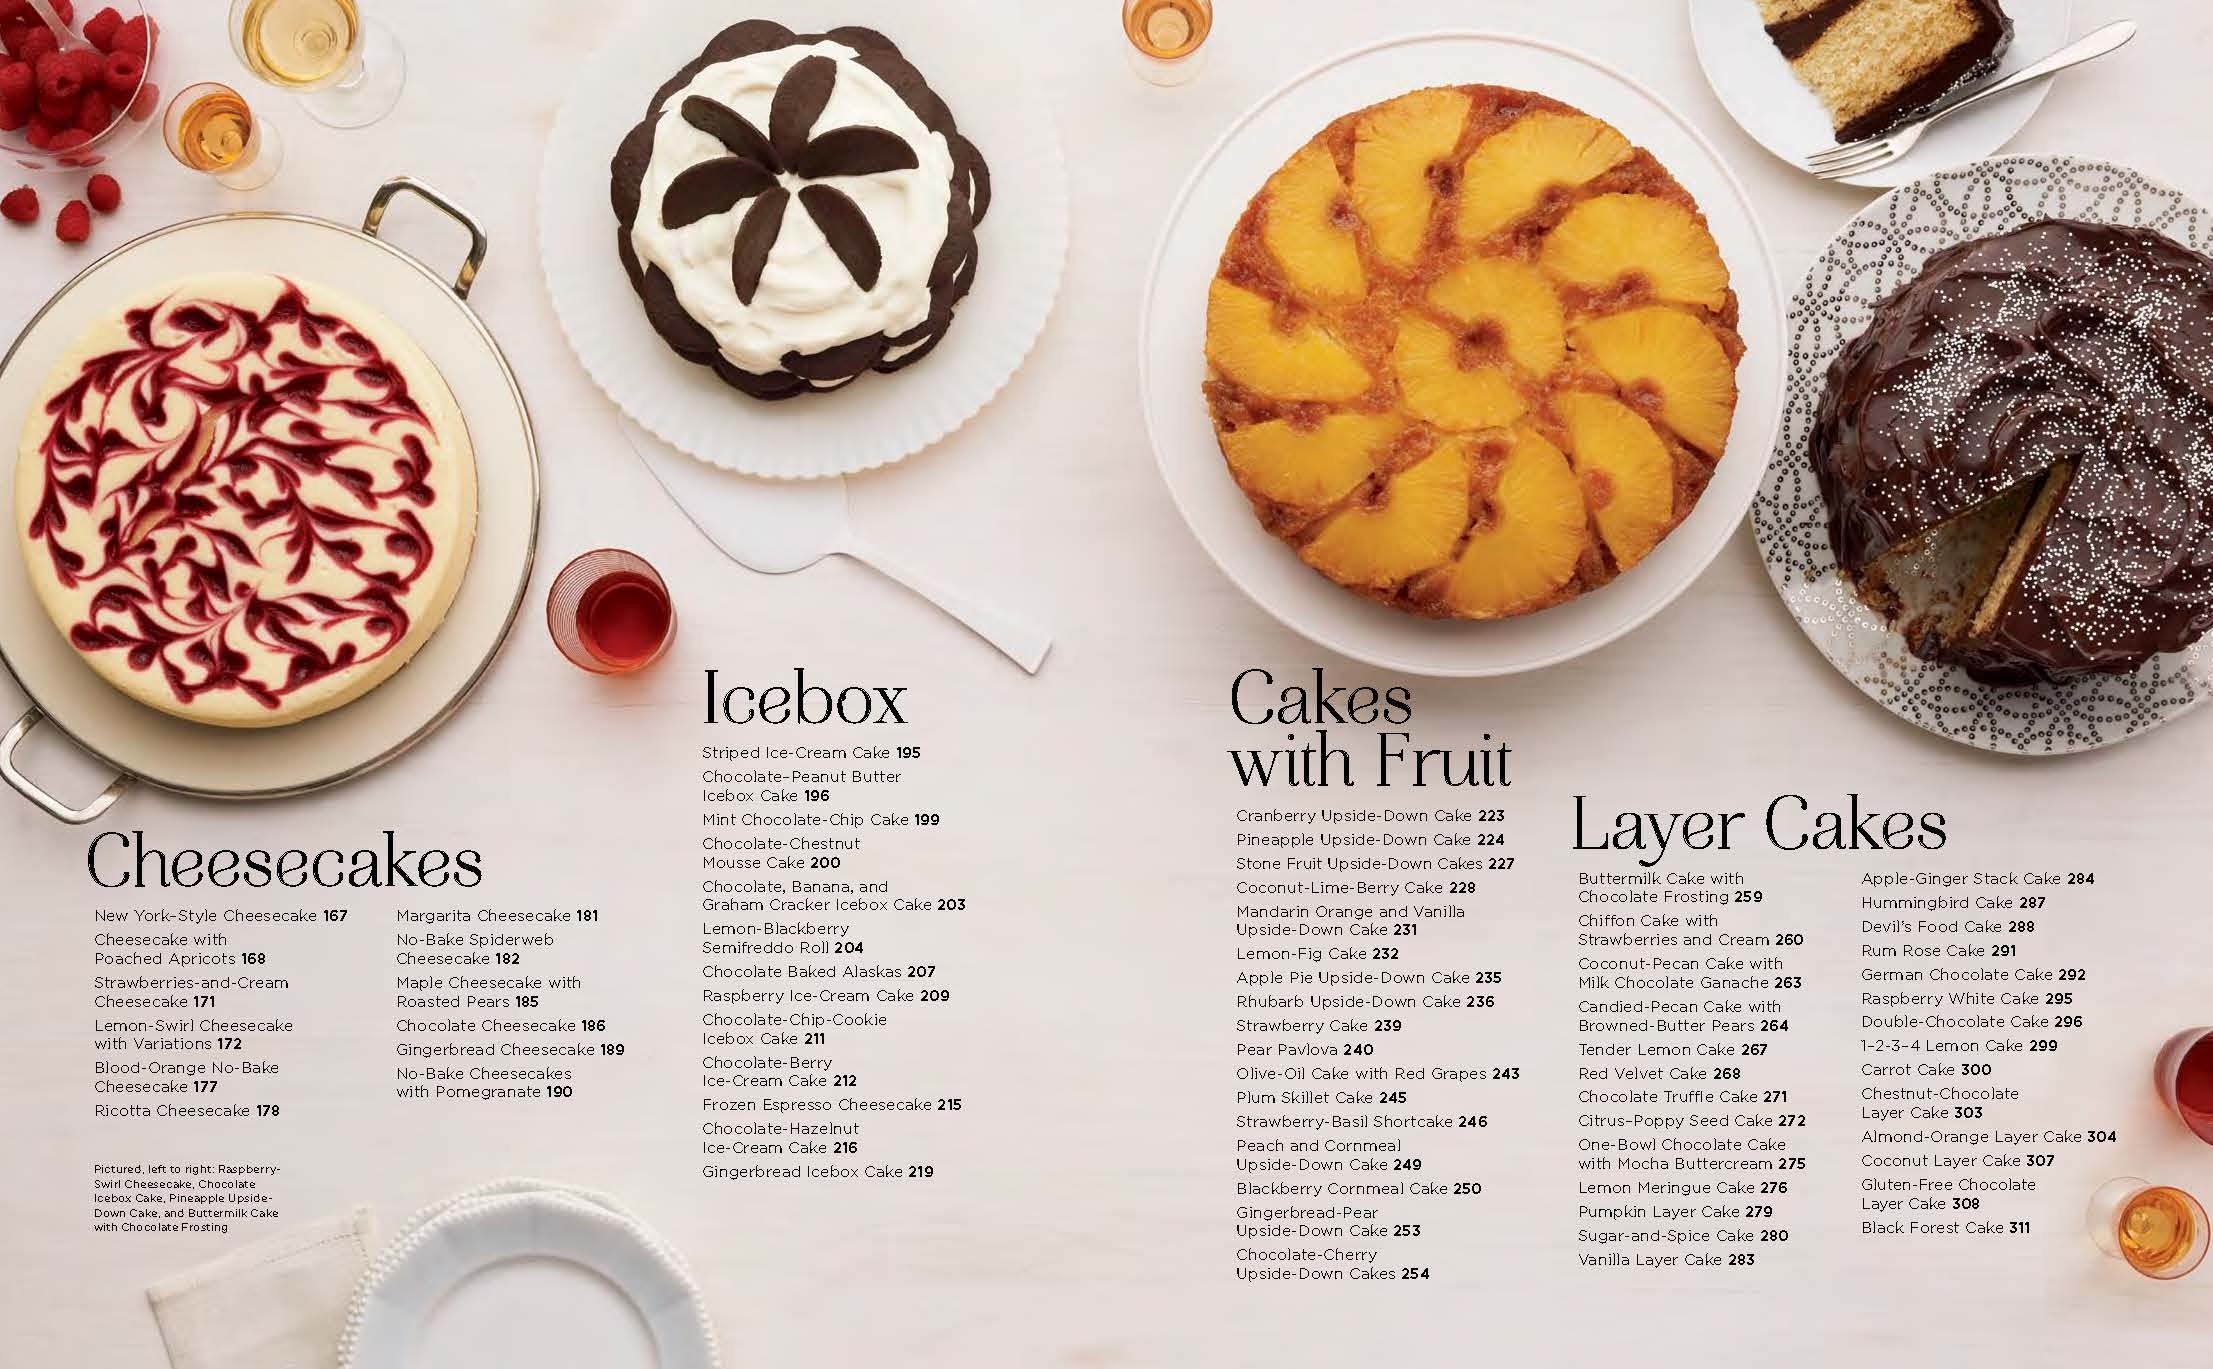 81MgQqxmy7L - Martha Stewart's Cakes: our first-ever book of bundts, loaves, layers, coffee cakes, and more